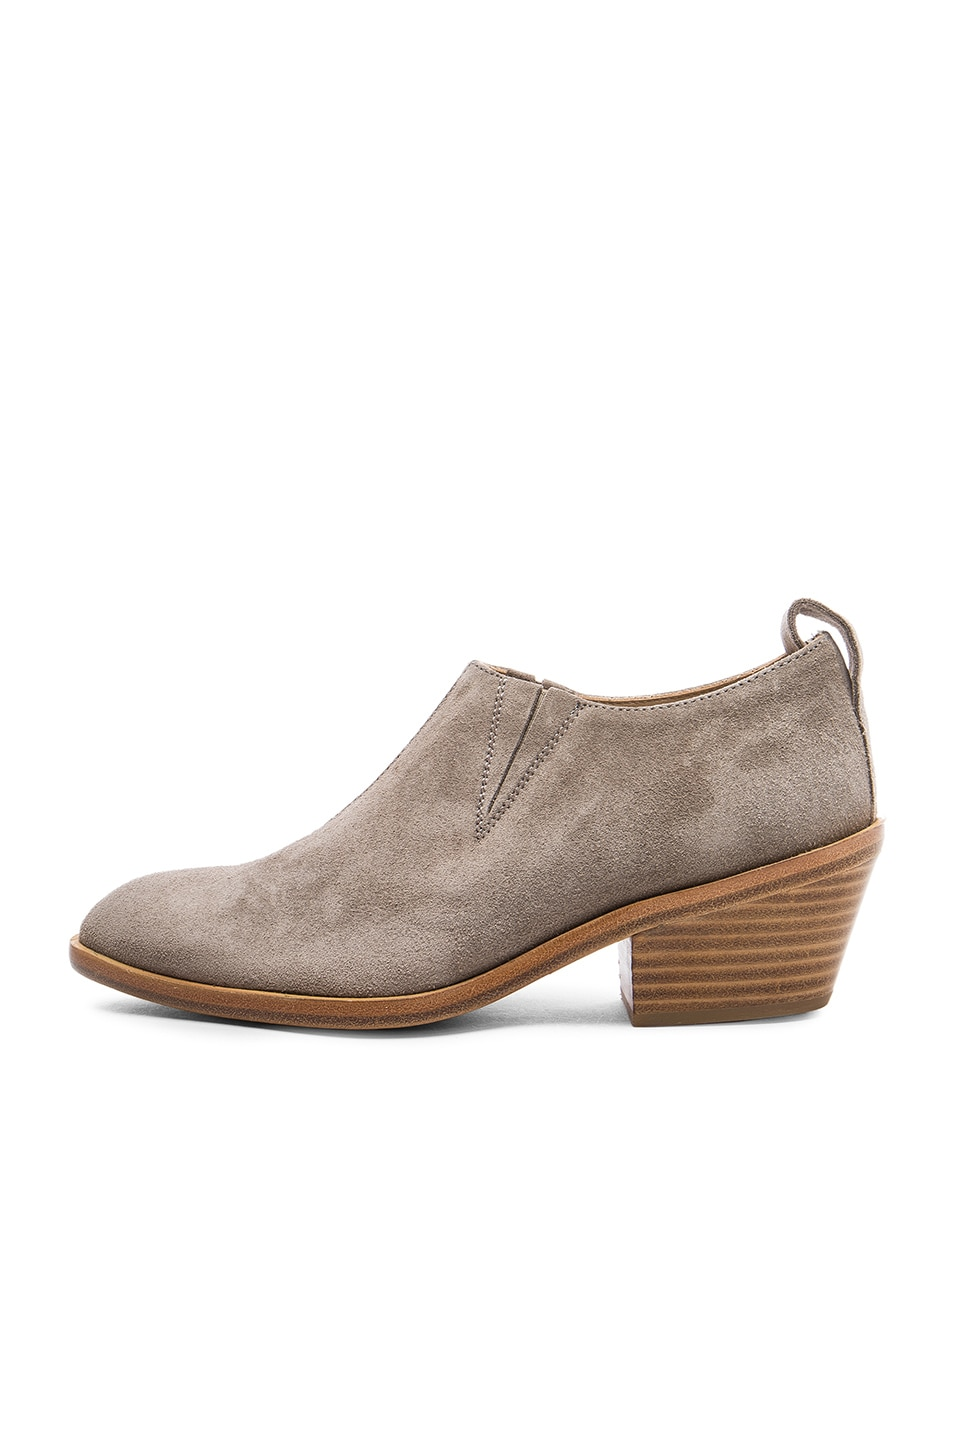 Image 5 of Rag & Bone Suede Thompson Boots in Warm Grey Suede